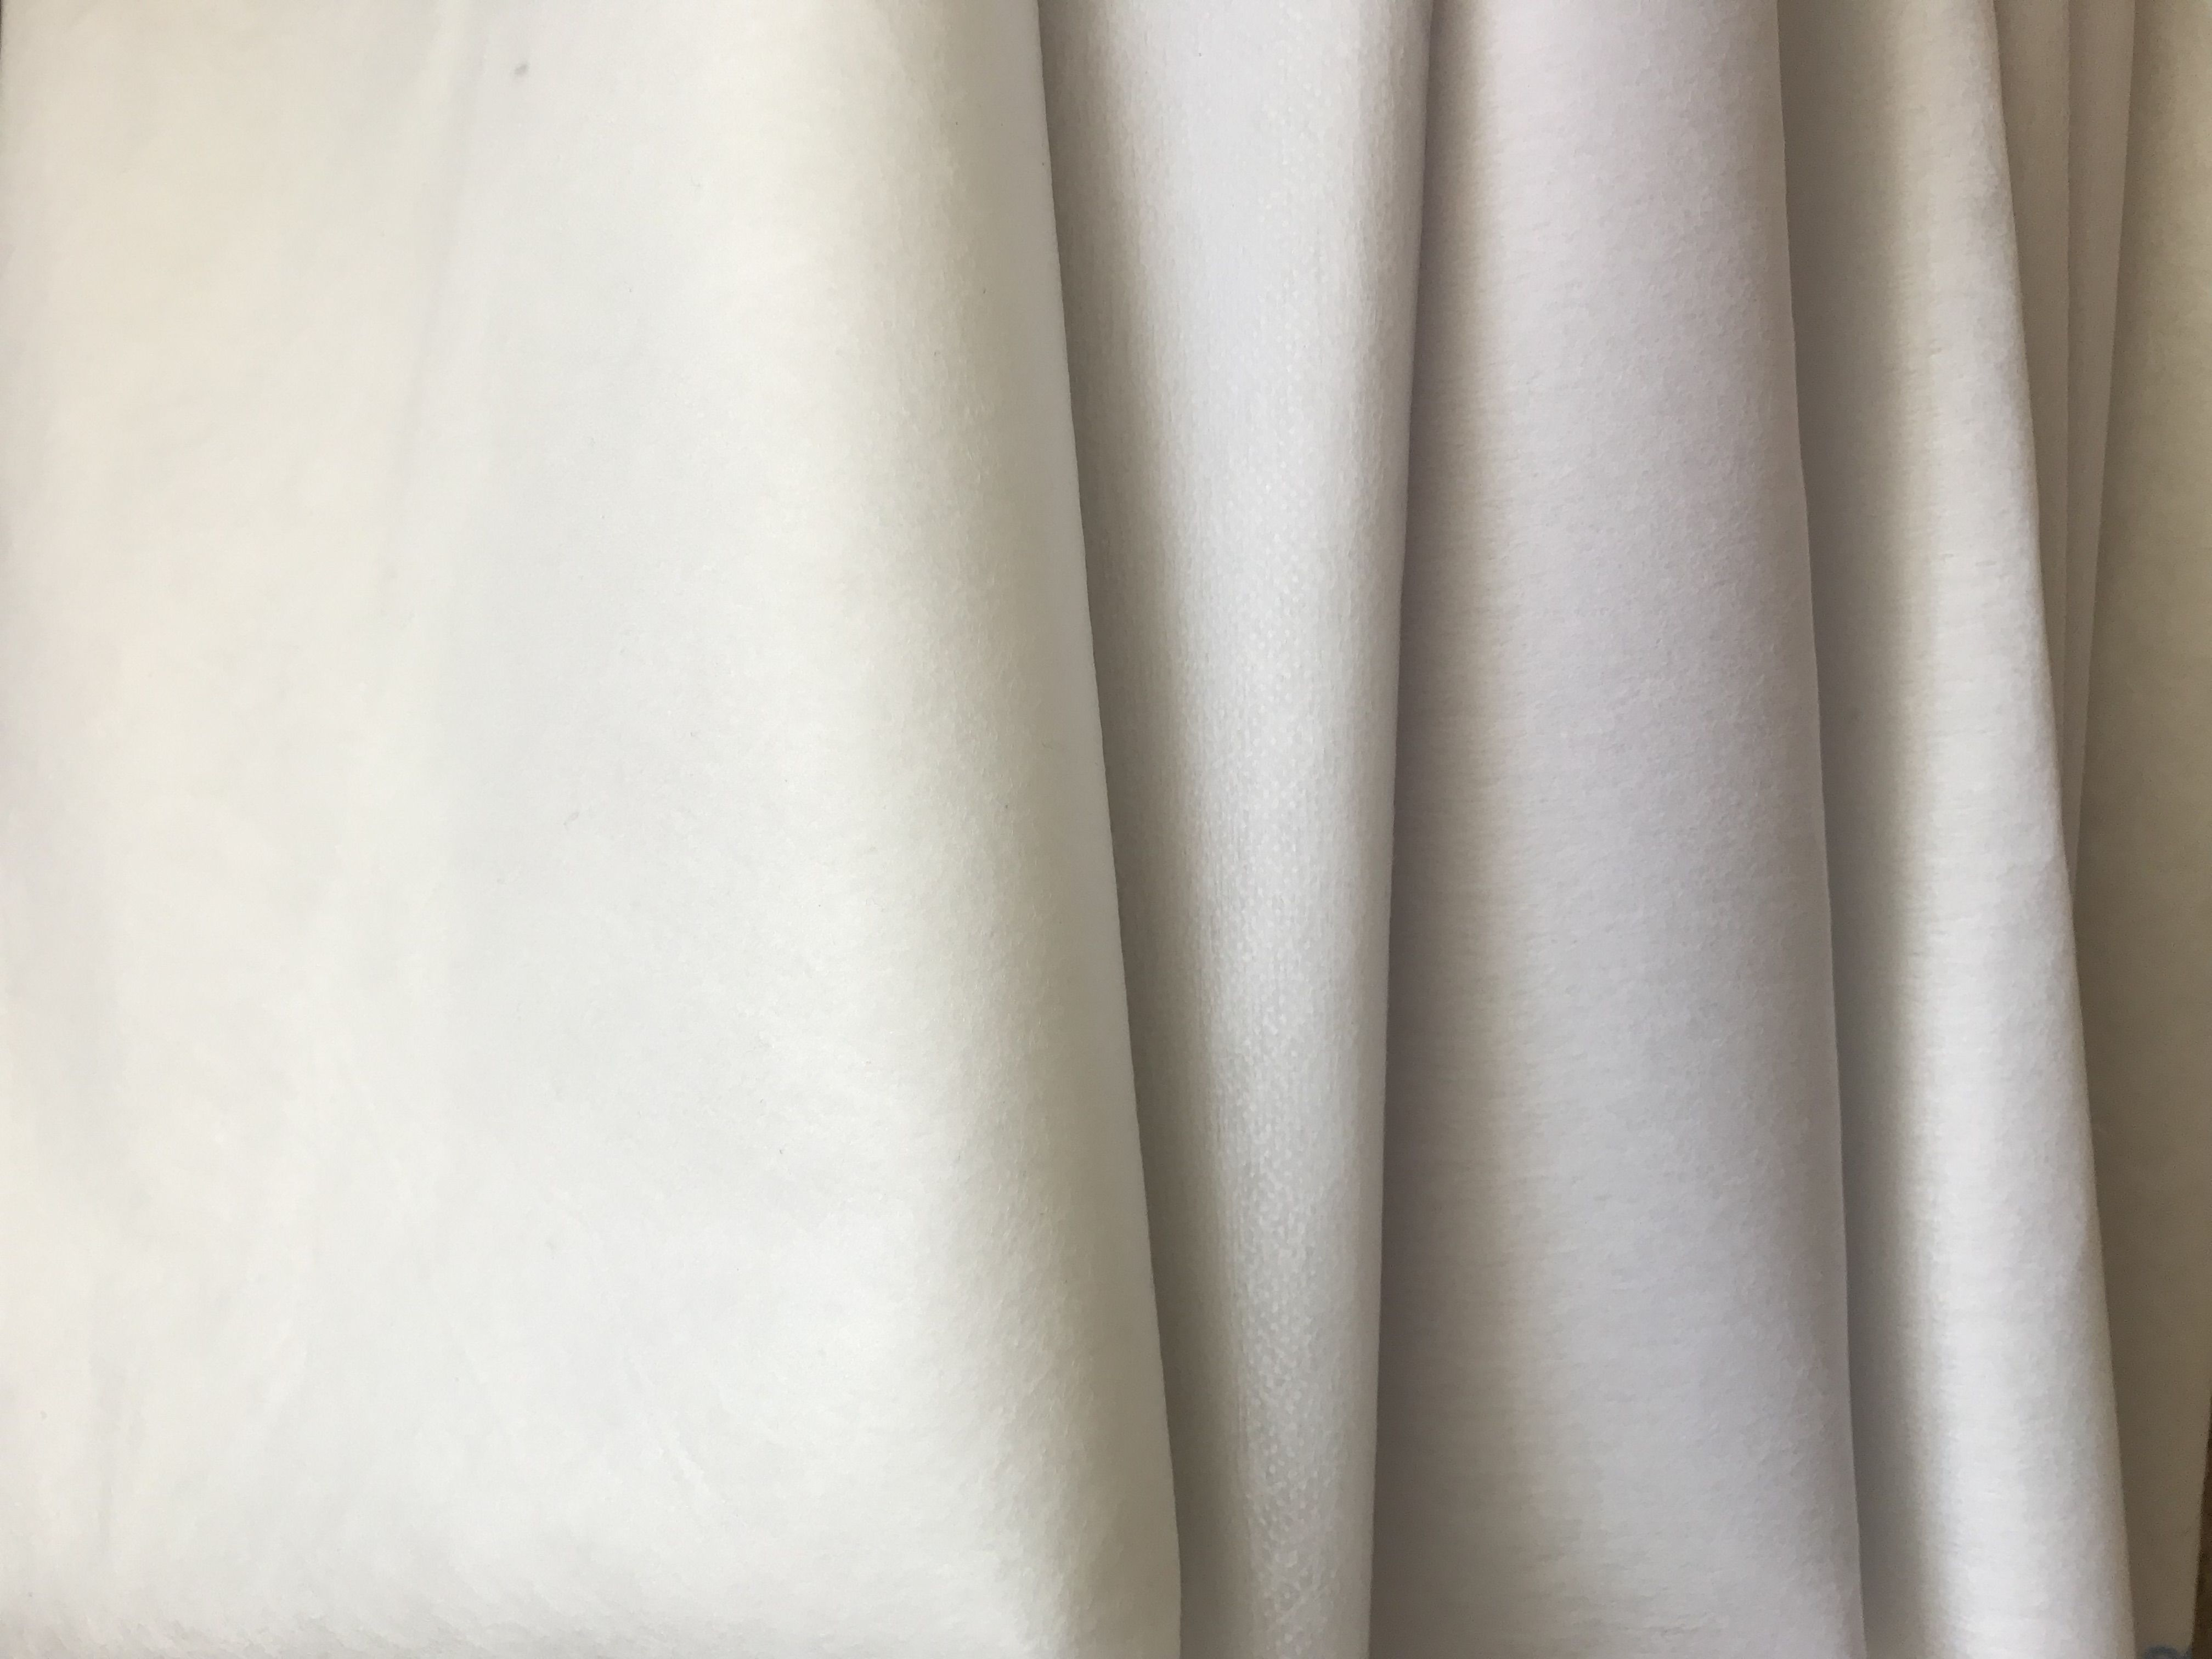 Remnant - Interfacing Sew In Remnant Bundle - Various Weights - 20m approx